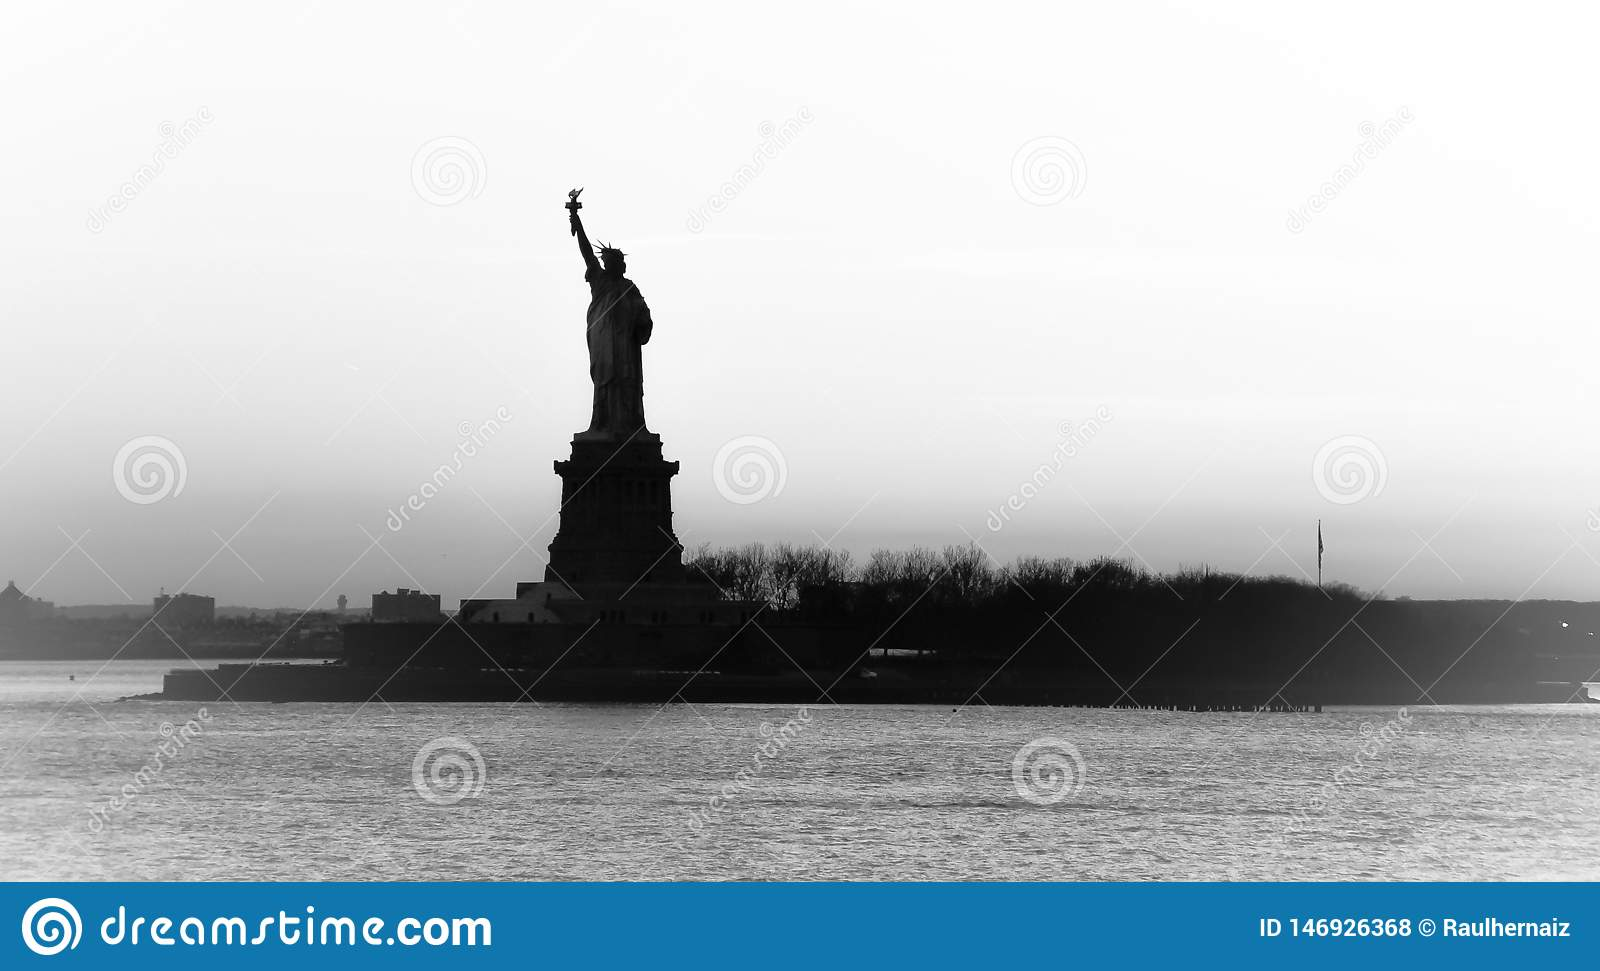 Backlight view of American symbol Statue of Liberty silhouette in New York, USA. High key black and white image